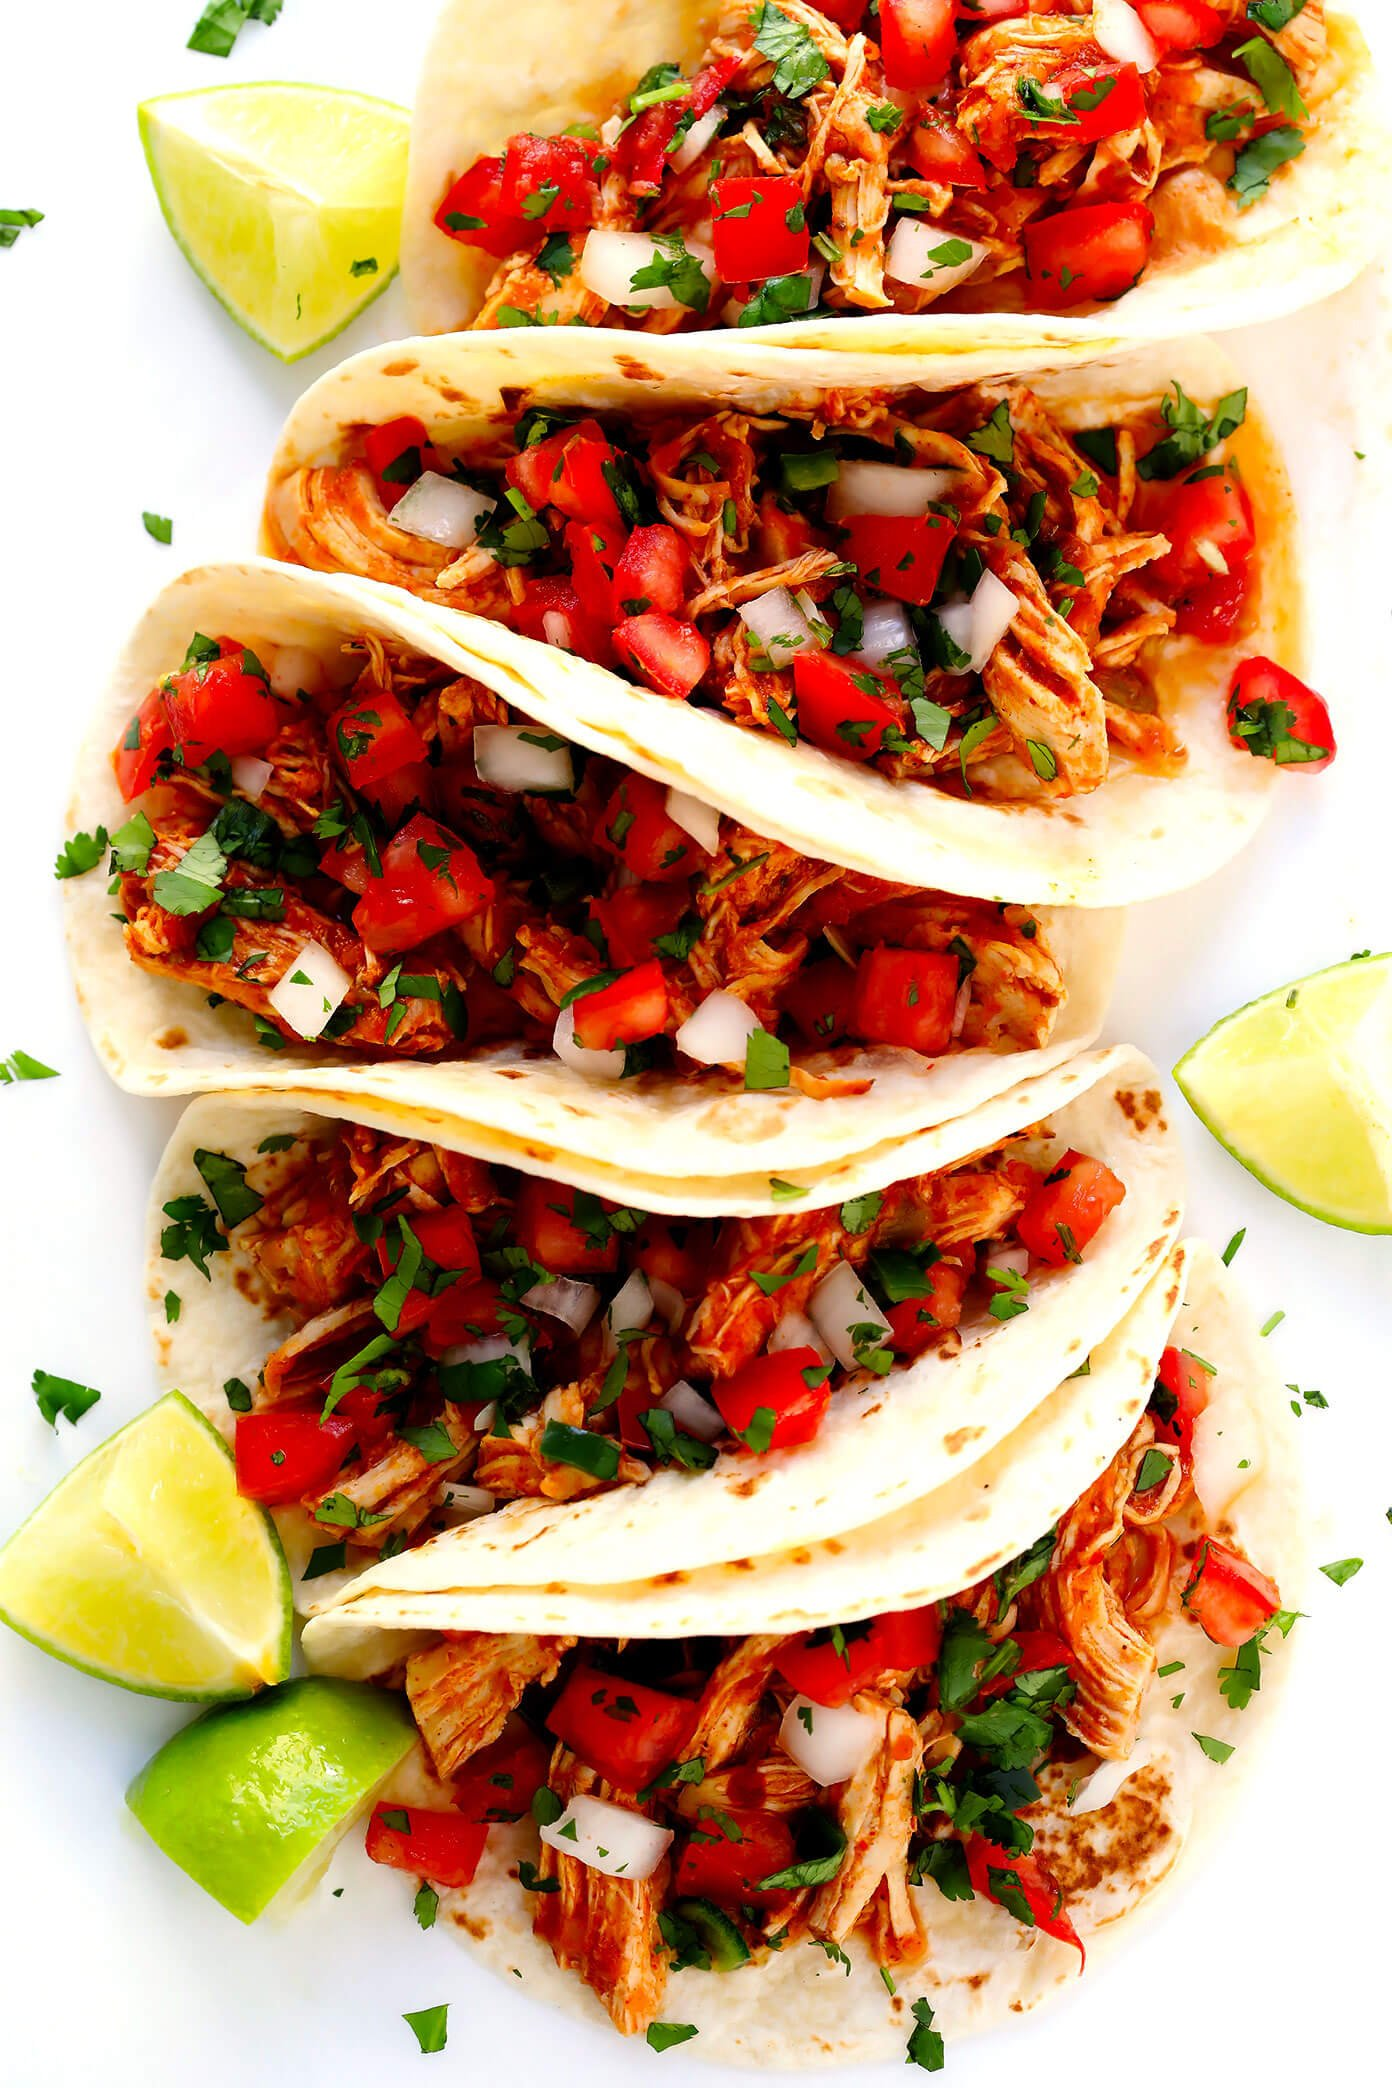 Mexican Shredded Chicken Tacos with Pico de Gallo